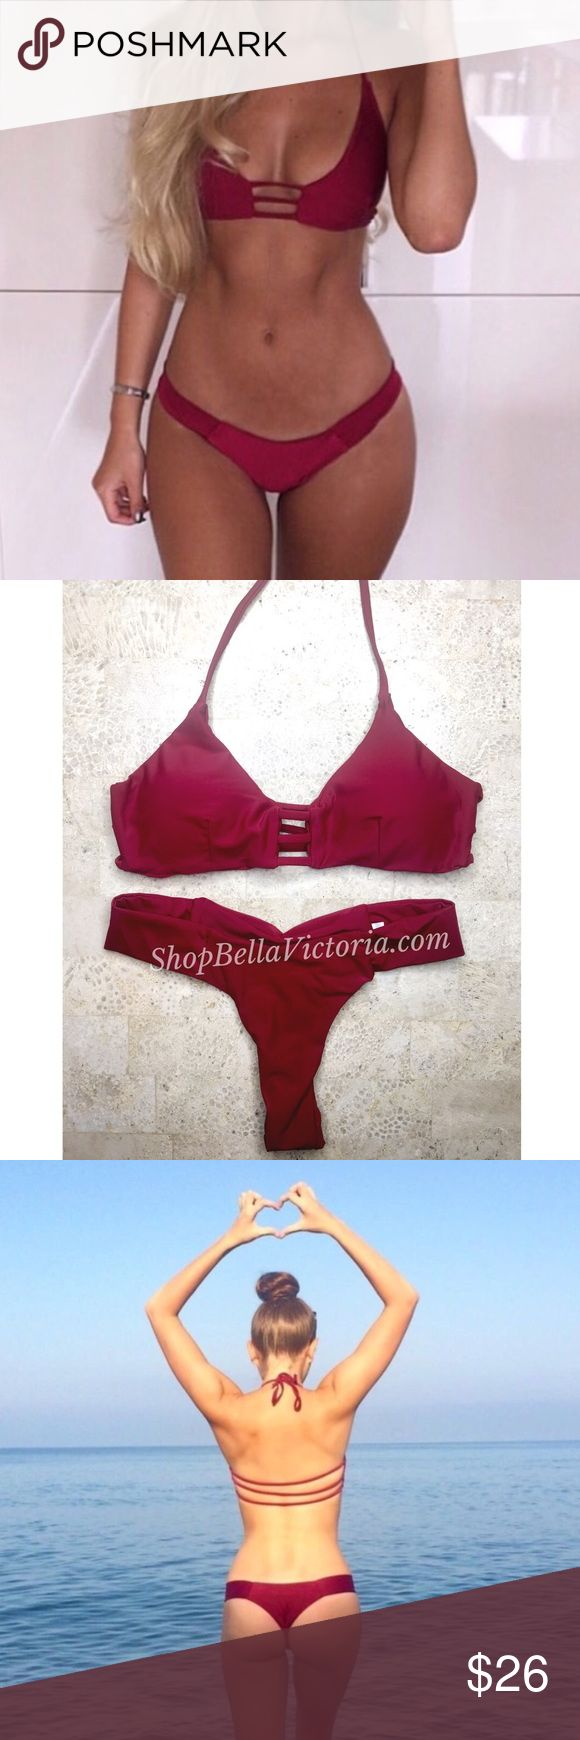 Kiera- Burgundy Strappy Thong Bikini Set New New !   Kiera bikini set strappy halter top comes padded with thong ruched bottom    Size available : Small(24in waist) , Medium( 26in waist)  *Note all measurements are taken of garments laying flat without stretching  Color: Burgundy  Bundle to save   Follow & tag:  Ig: shopBellaVictoria  Fb: Bella Victoria BellaVictoriaBoutique Swim Bikinis